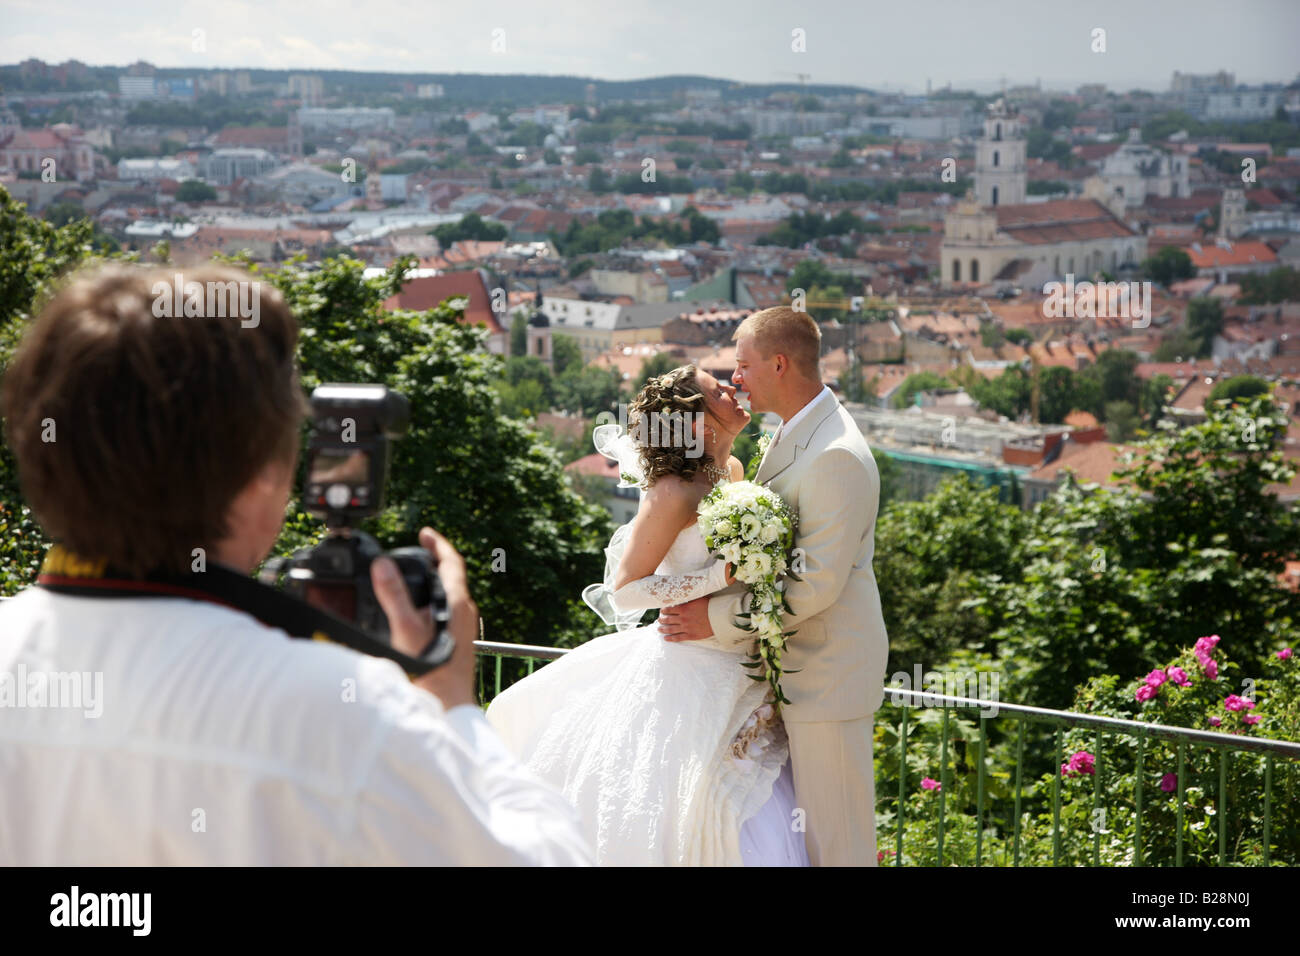 LTU Lithuania Capital Vilnius Wedding photo shooting on Kalnu hill - Stock Image